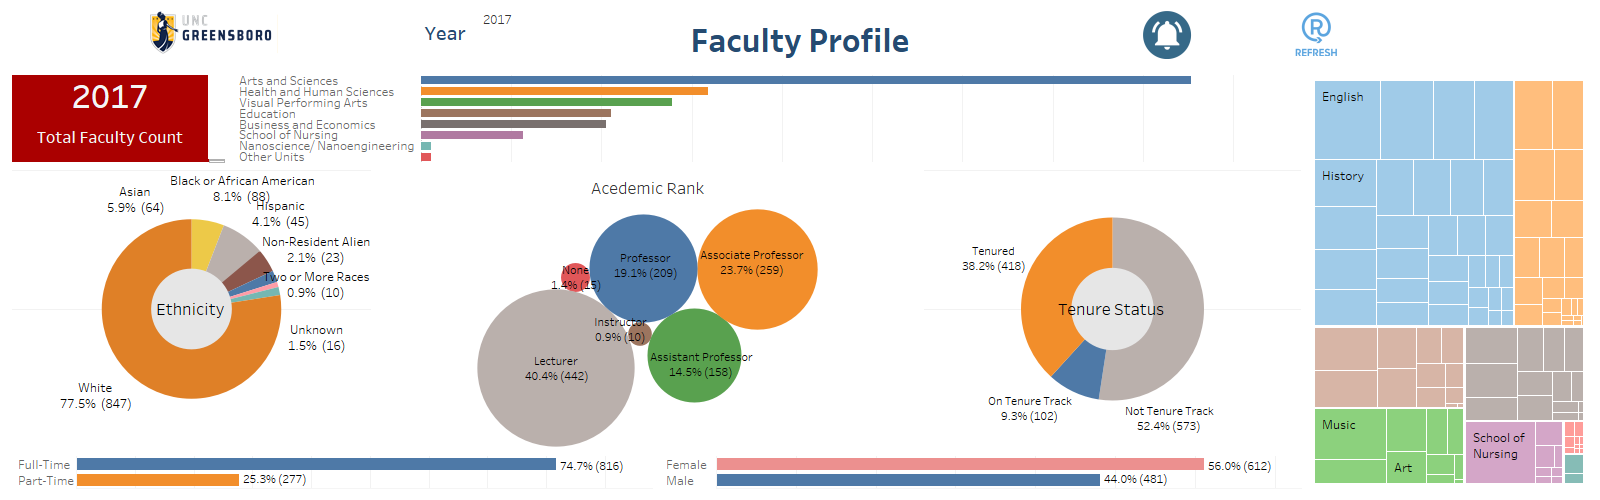 2018 Faculty Profile